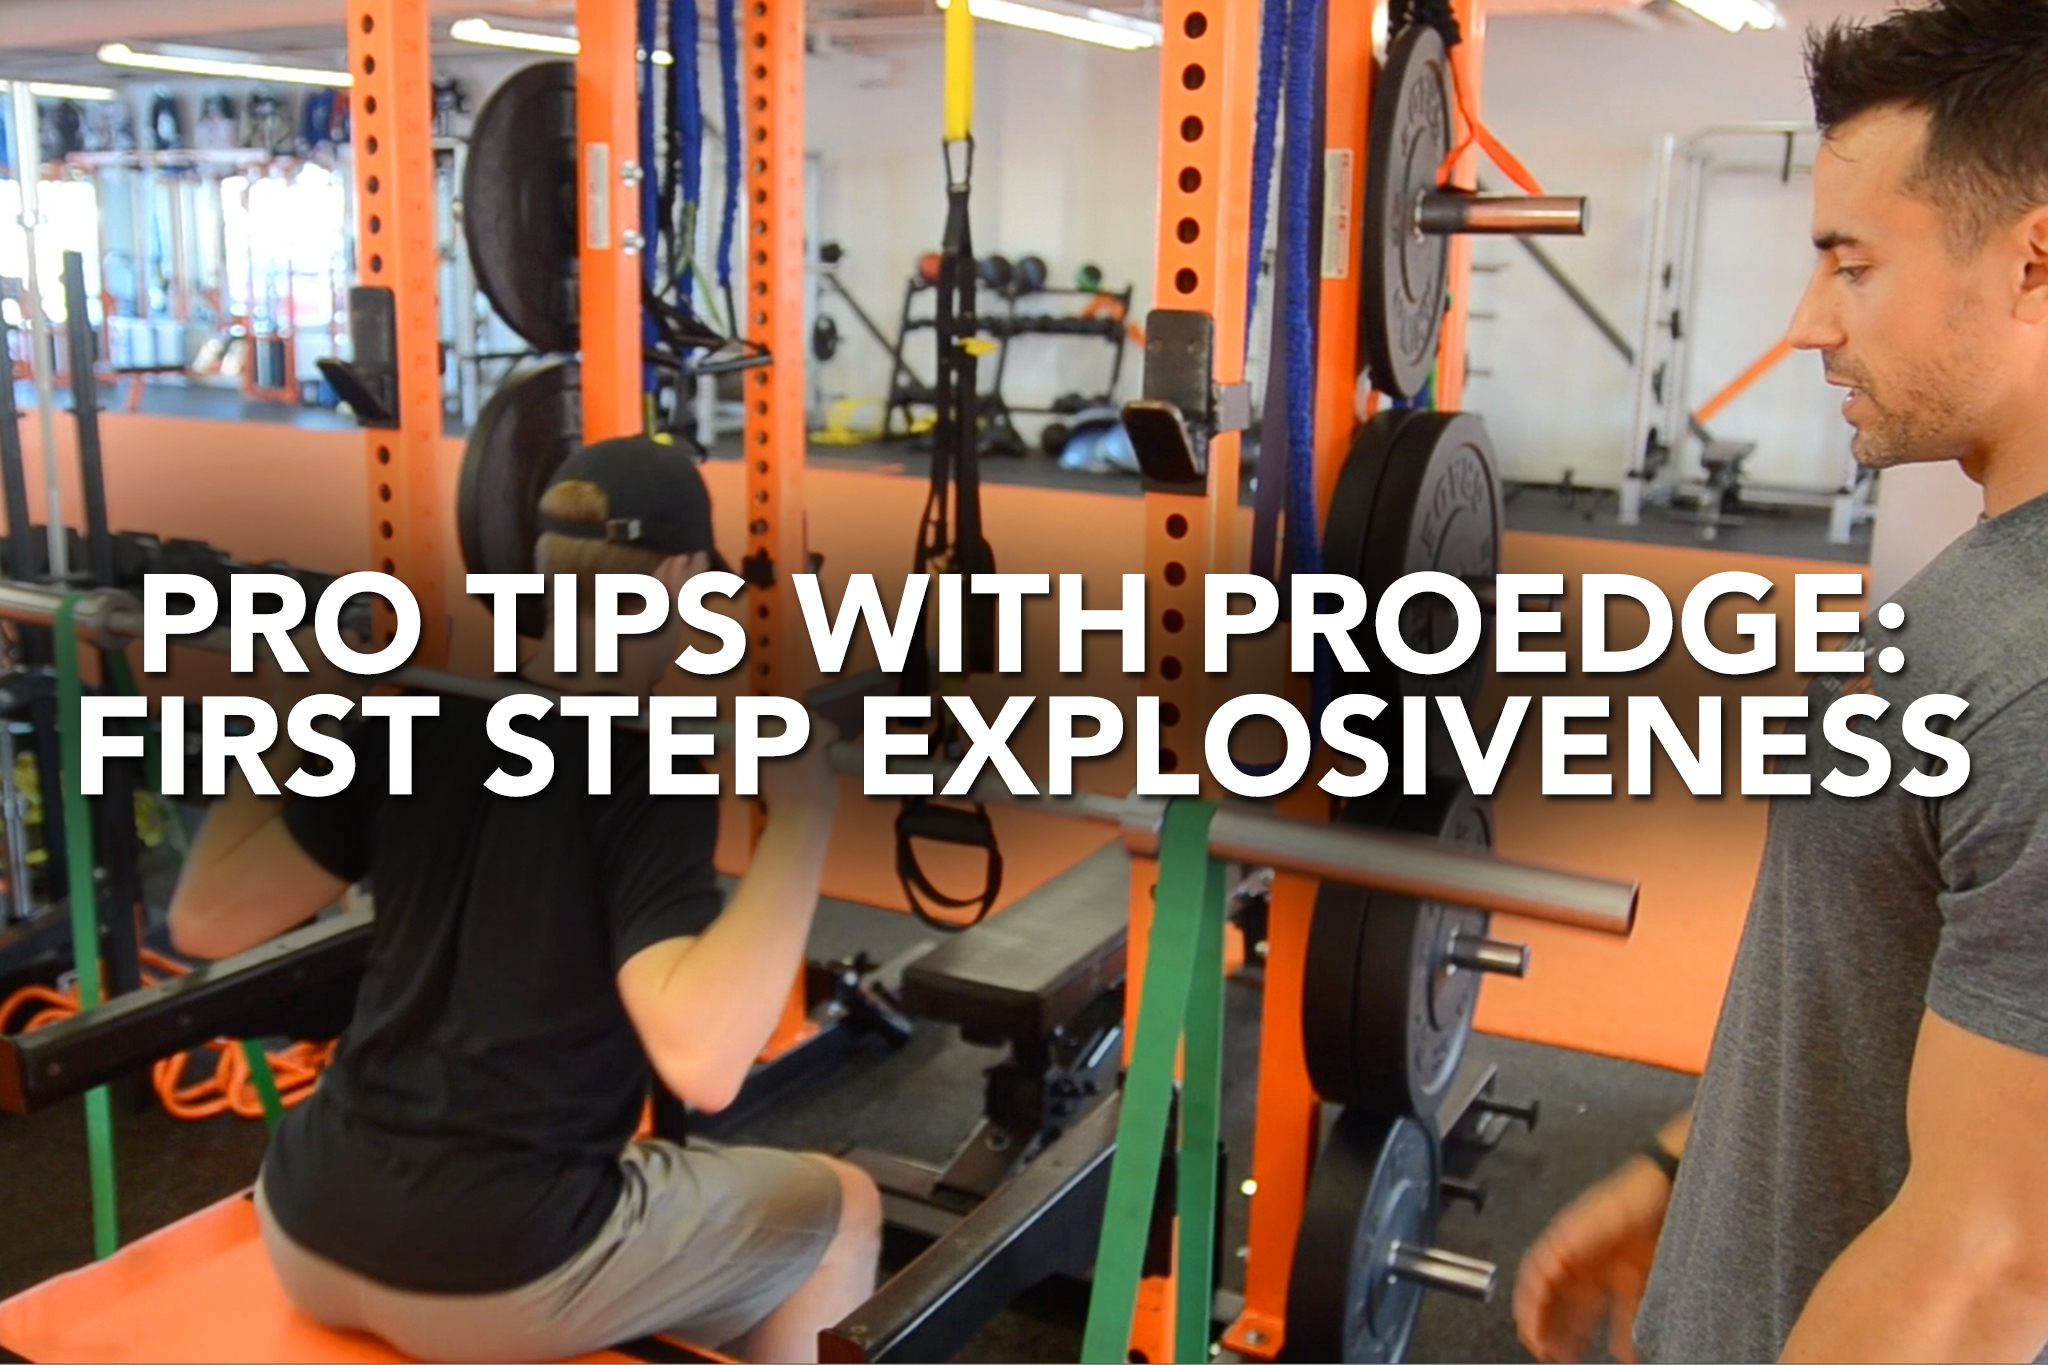 Pro Tips with ProEdge: First Step Explosiveness